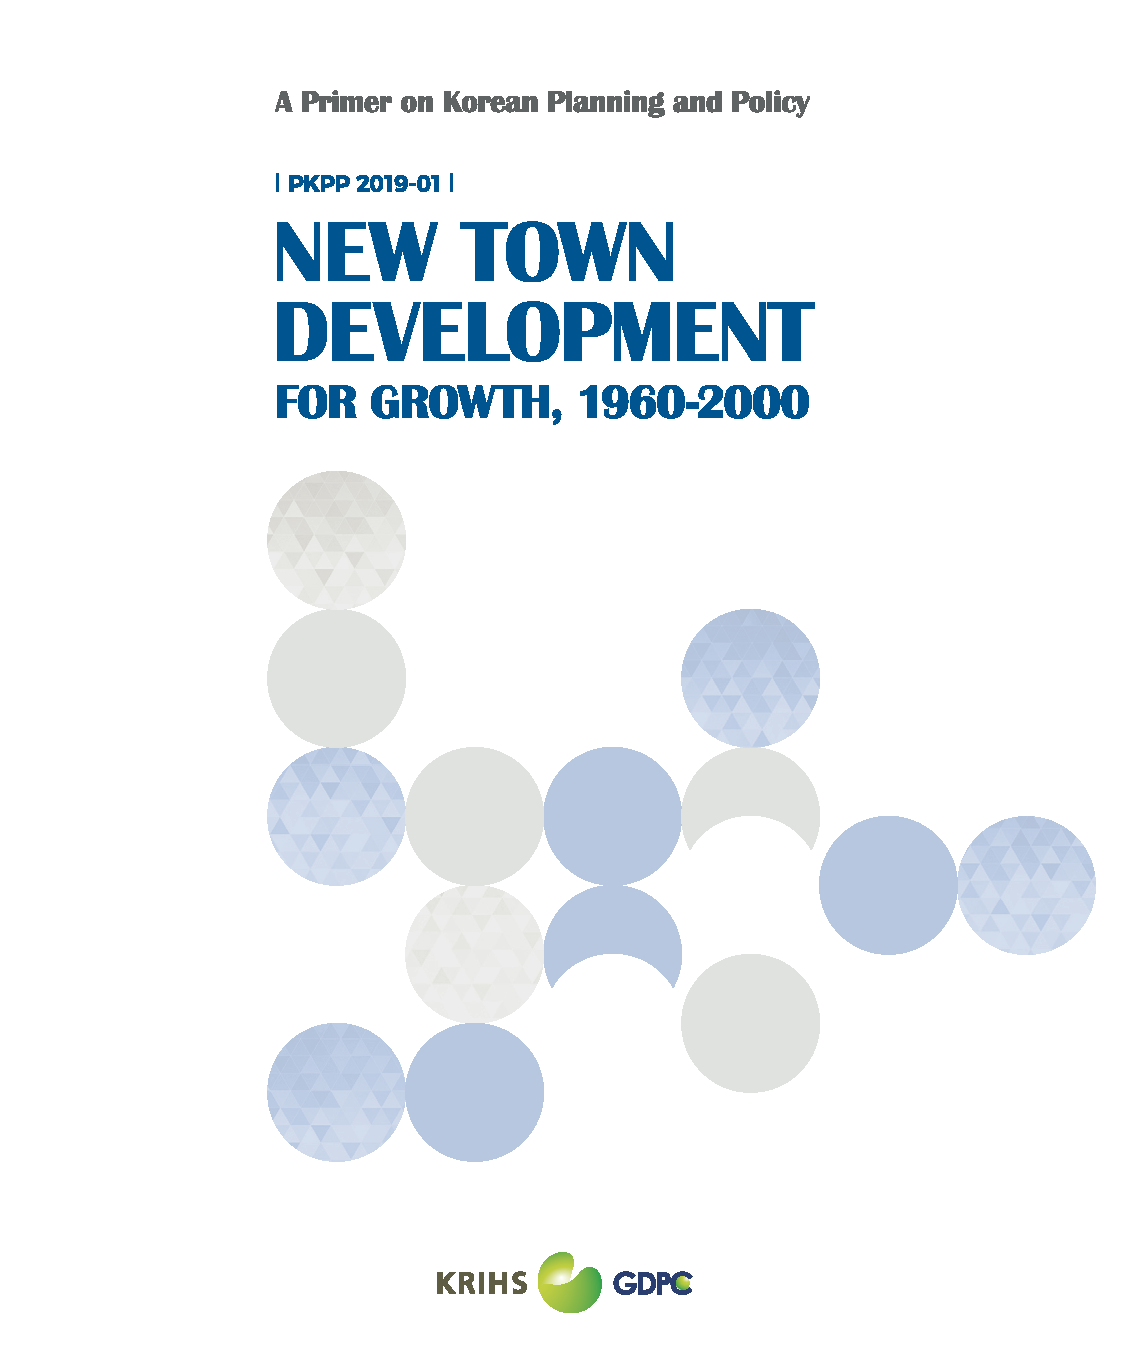 New Town Development for Growth, 1960-2000 (A Primer on Korean Planning and Policy)